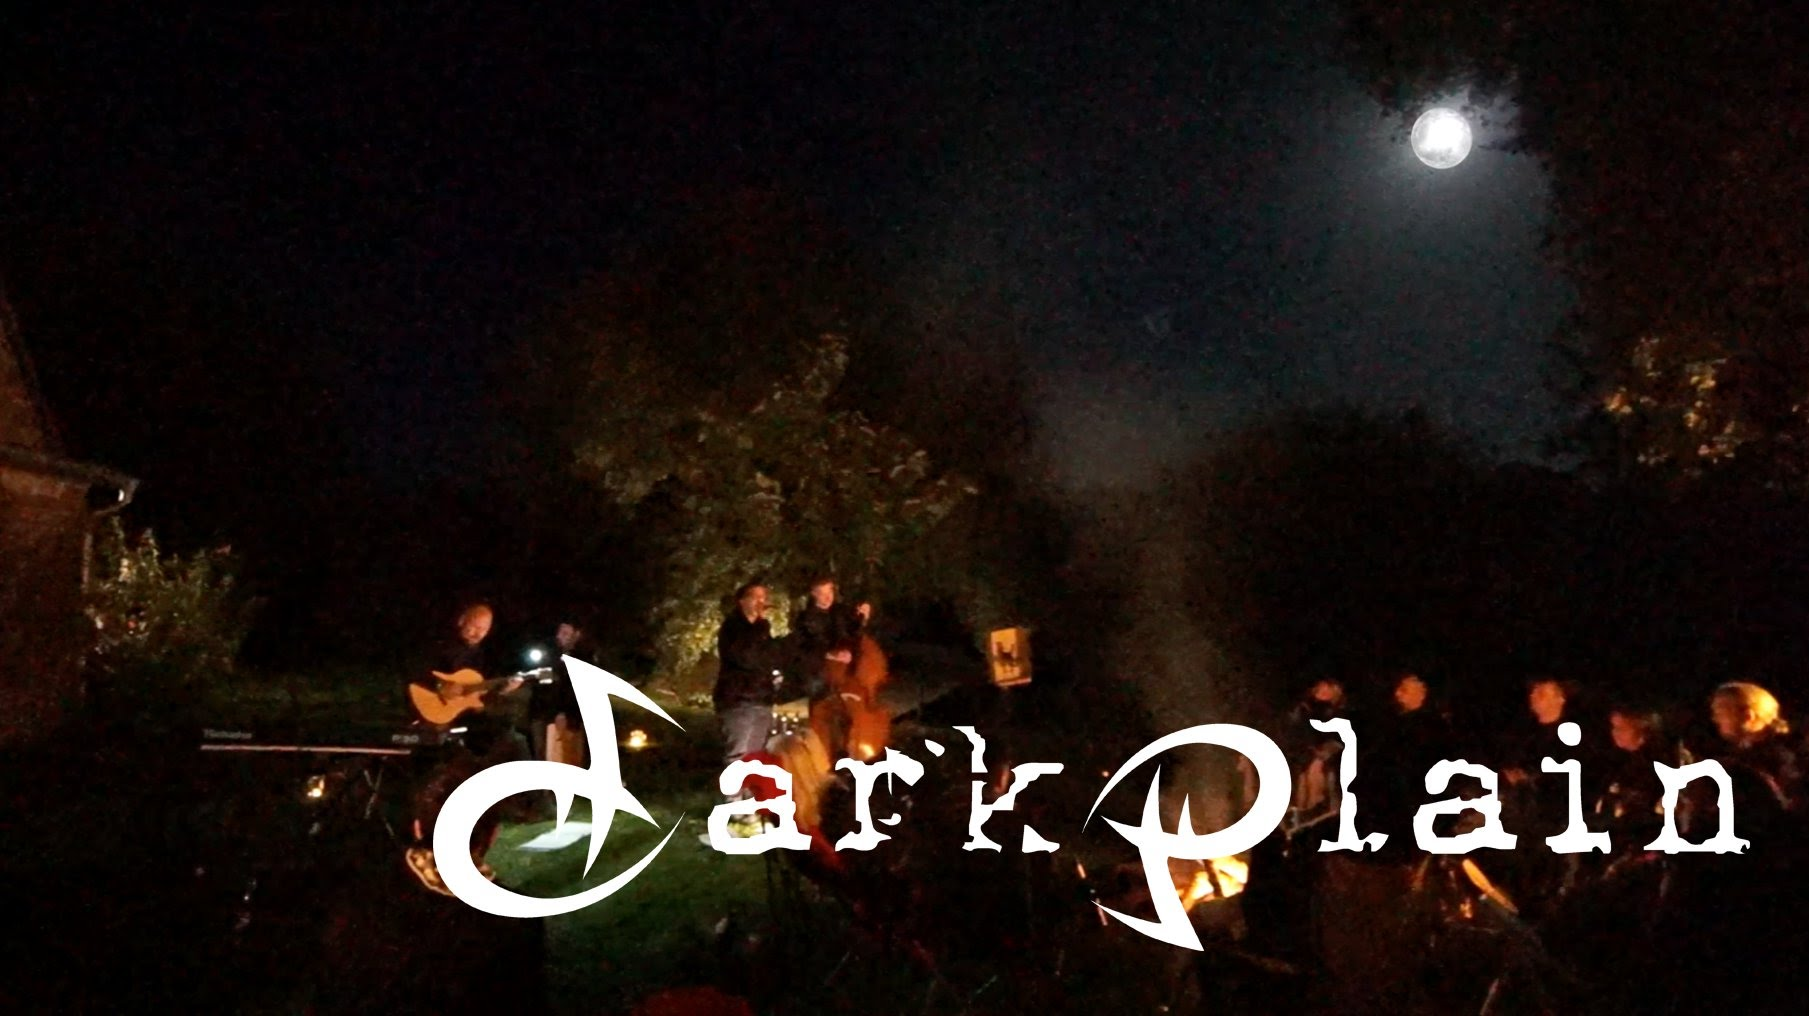 darkplain - Where Are You - Unplugged  @Acoustic Weekend 2015